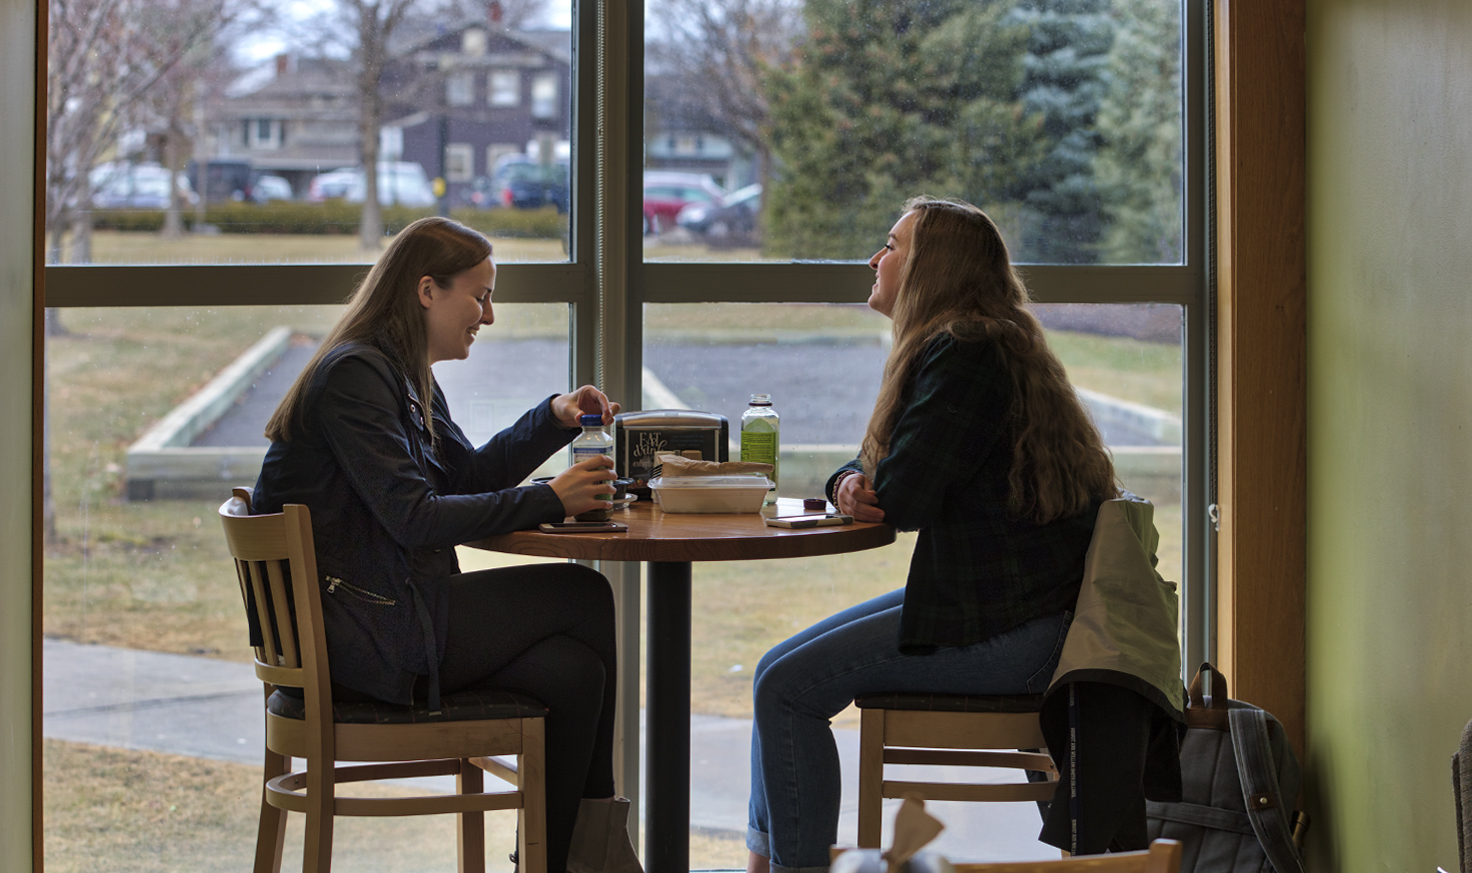 Anna Smith '19 and Margaret McKean '19 stop for lunch in the Scandling Campus Center café.